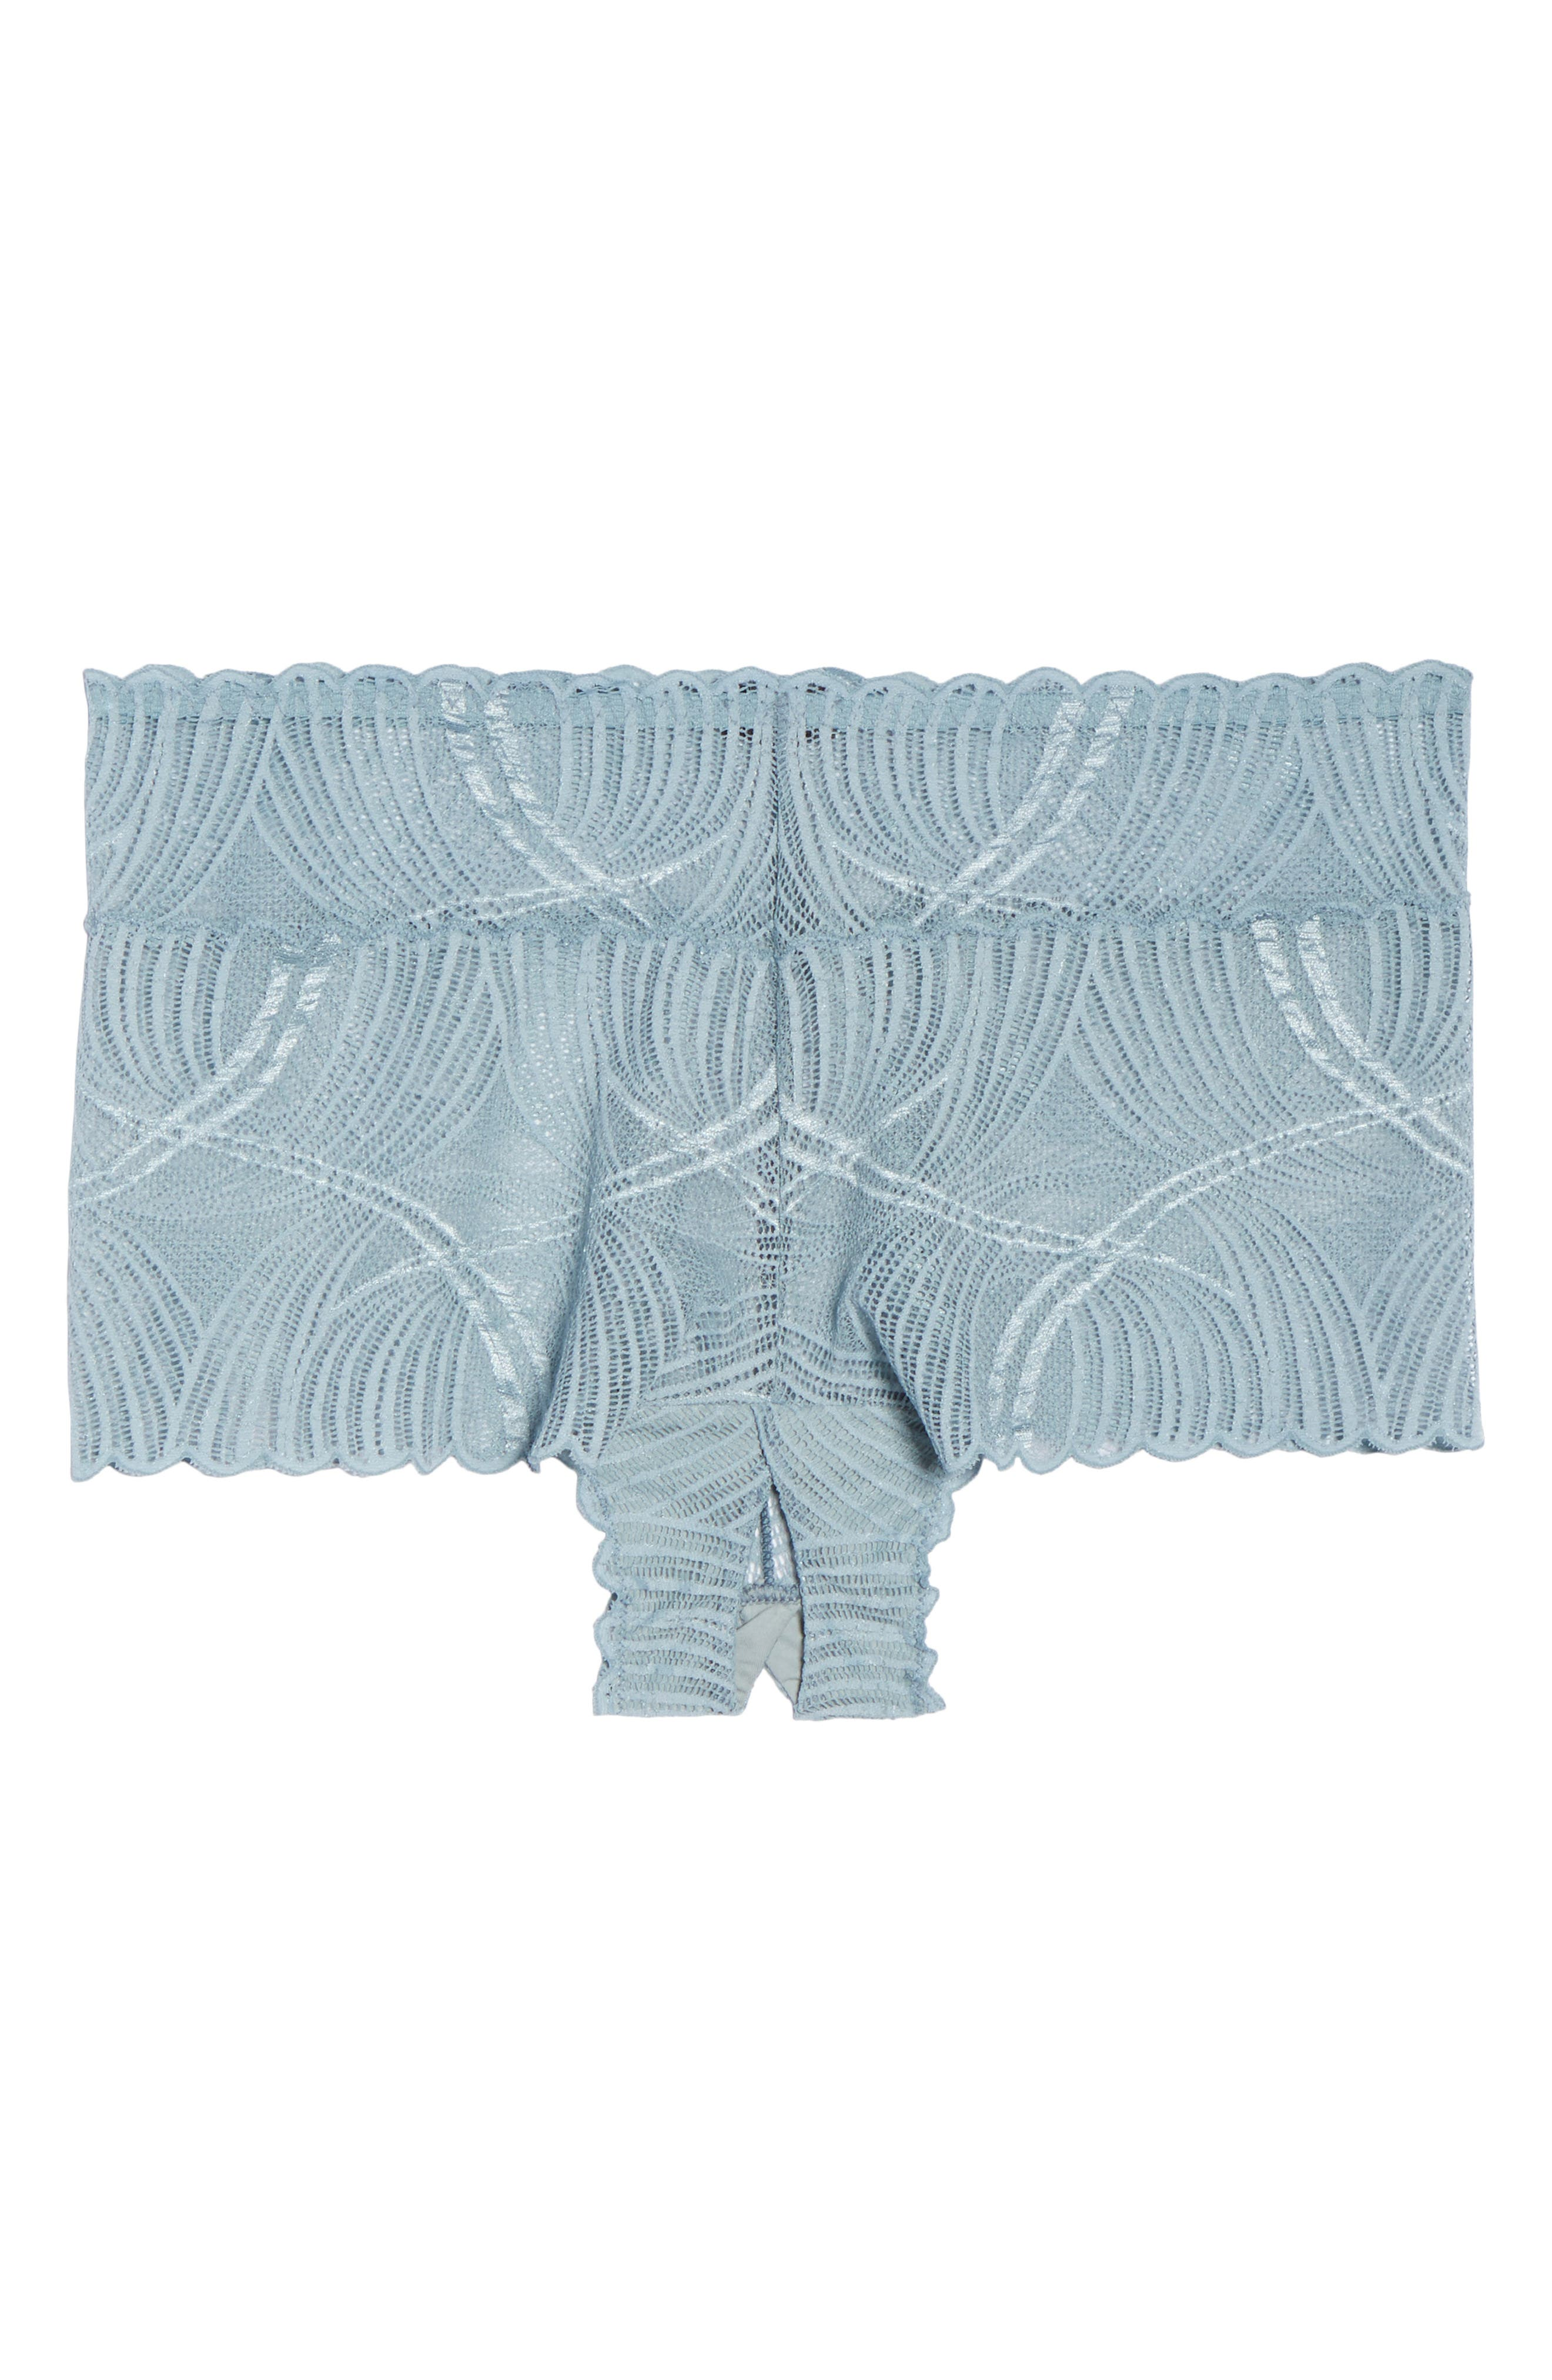 Minoa Low Rise Boyshorts,                             Alternate thumbnail 5, color,                             409